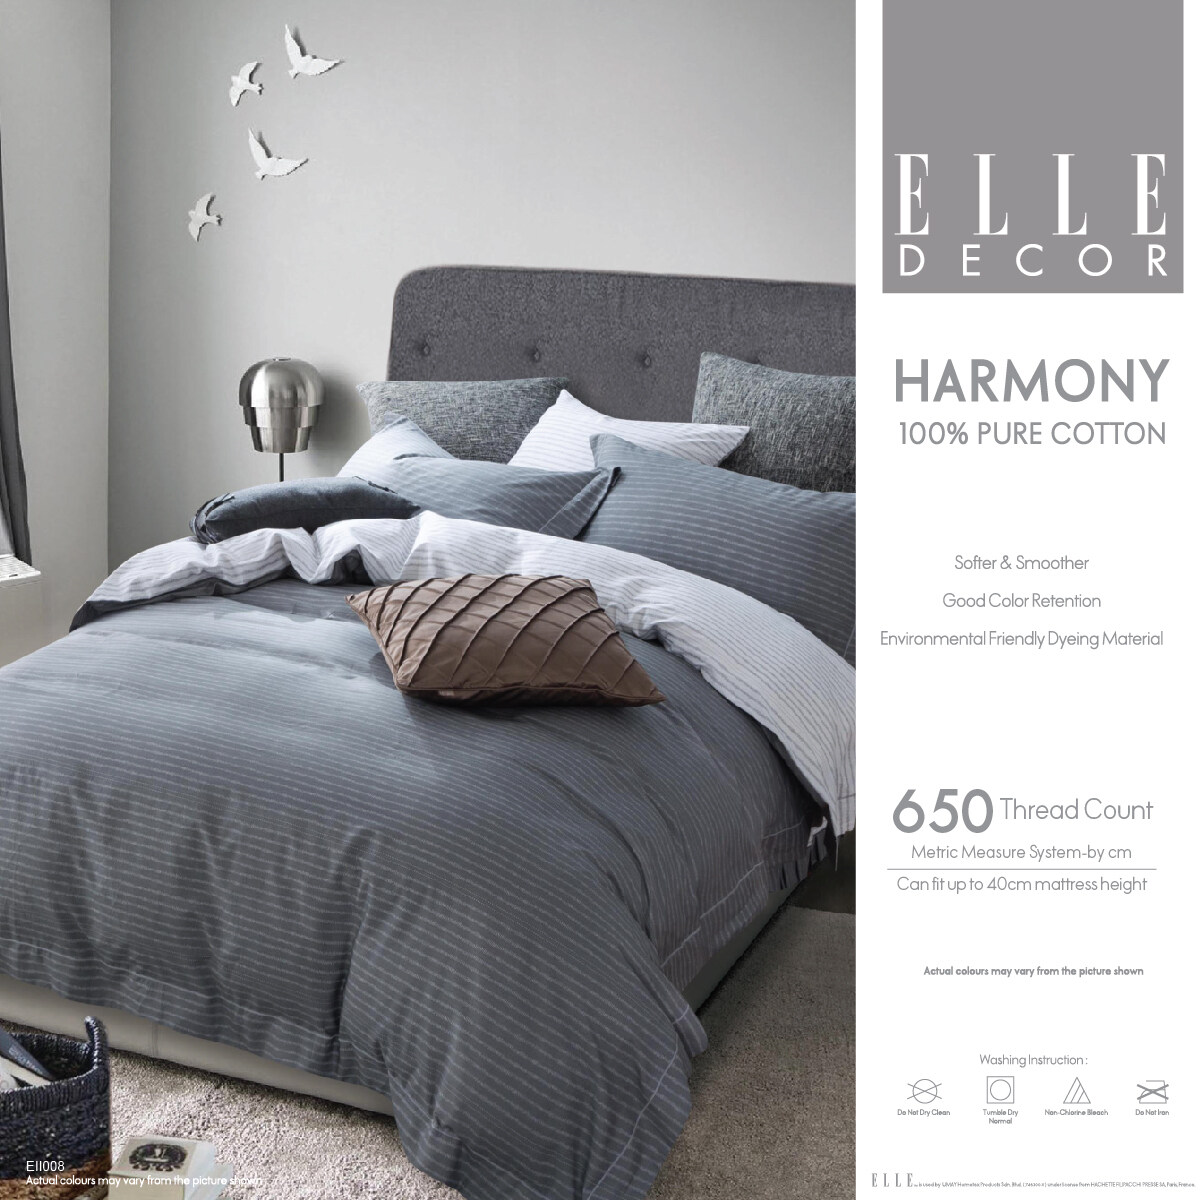 [100% Pure Cotton] ELLE Decor Harmony Collection Fitted Bed sheet Set Supreme High Quality Cadar 100%Cotton Super Single / Queen / King